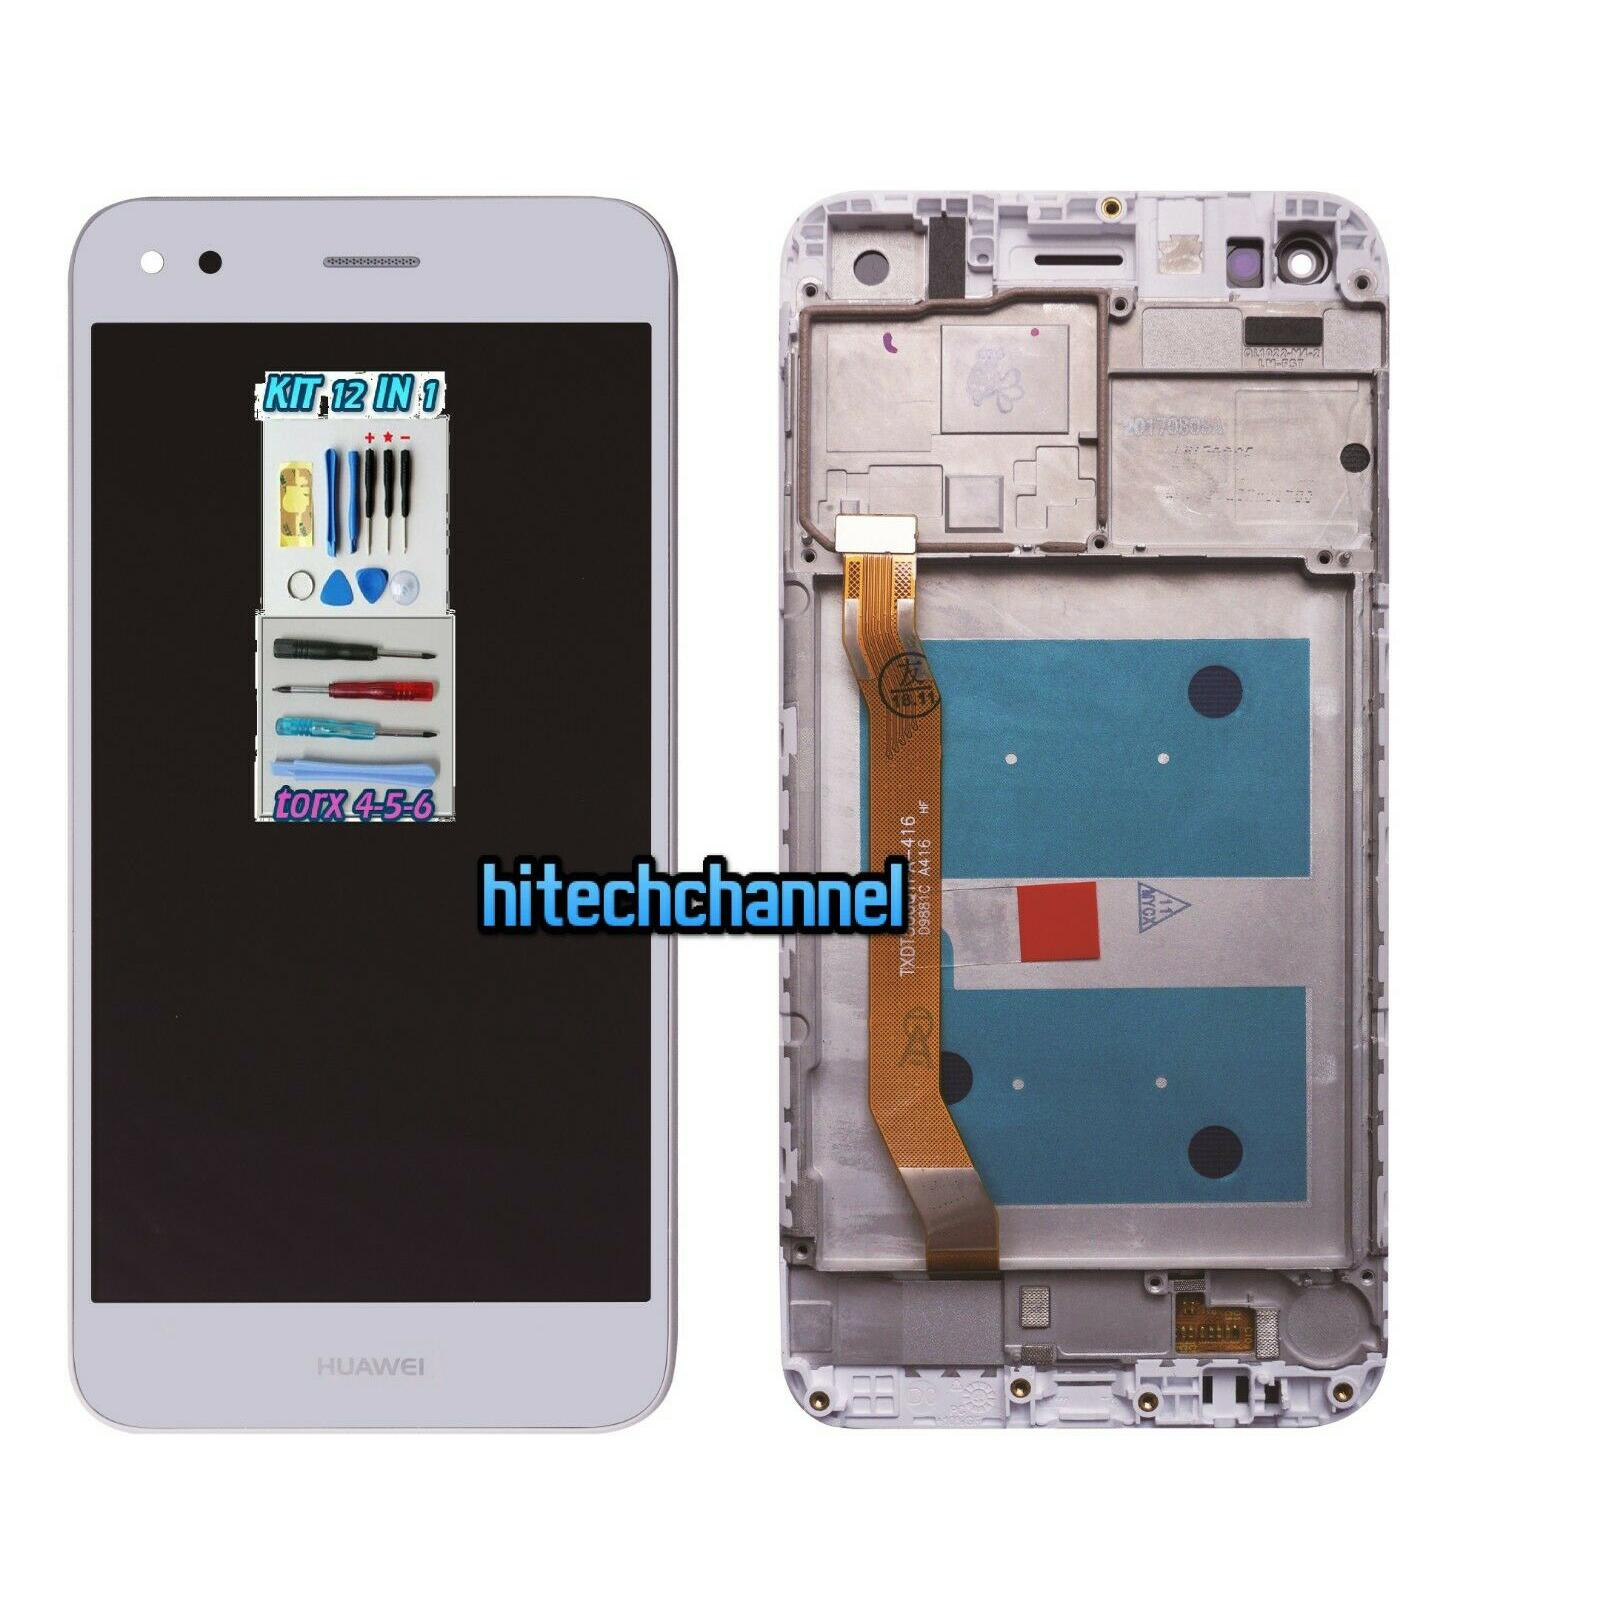 TOUCH SCREEN VETRO LCD DISPLAY FRAME BIANCO Huawei Y6 Pro 2017 SLA-L02 L22 TL00 Enjoy 7 +kit+ biadesivo